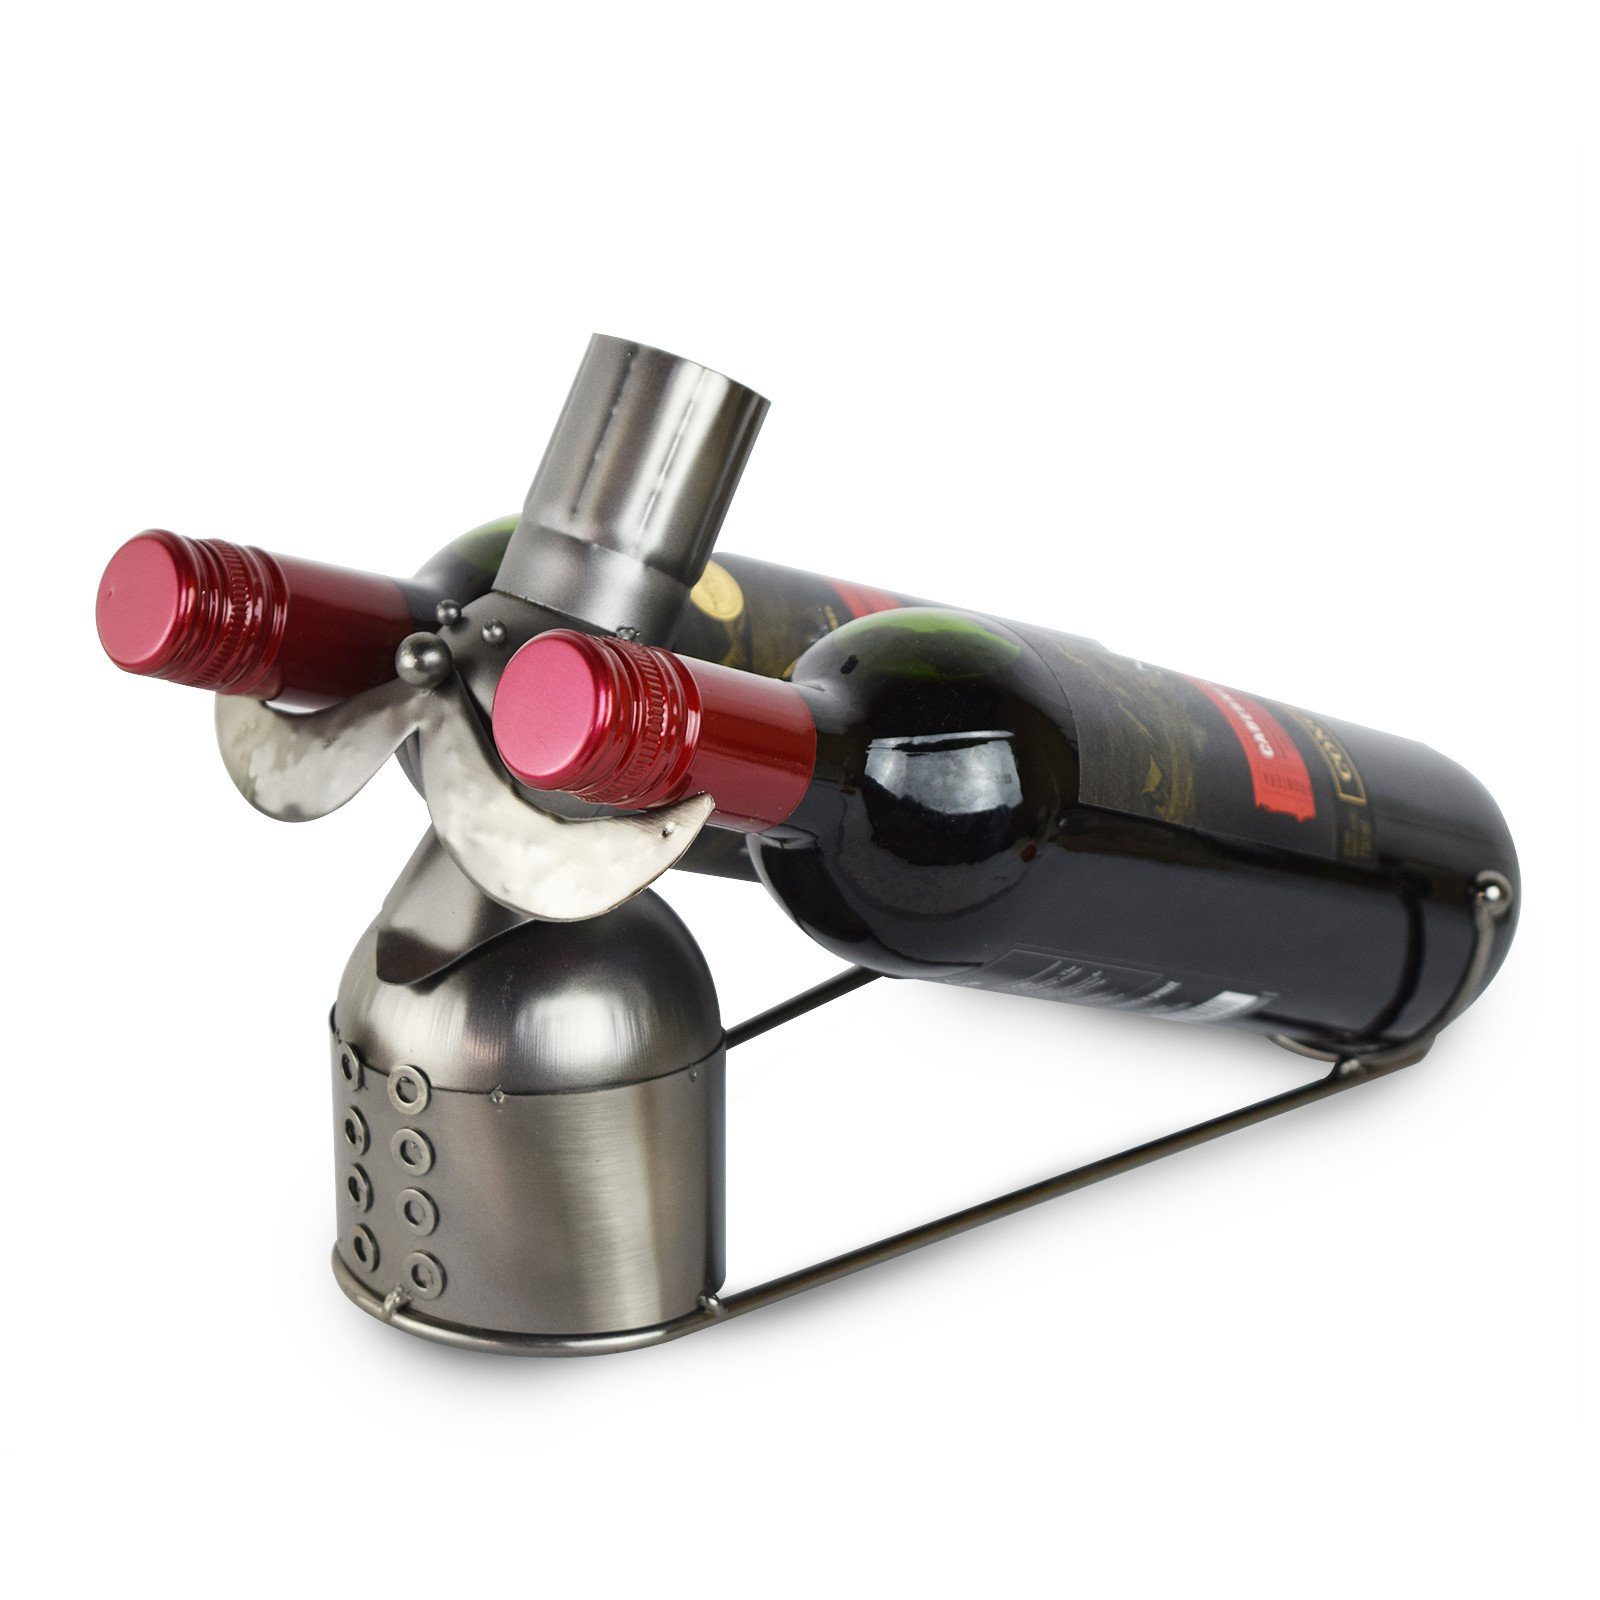 The Master Chef Wine Holder - Includes Wine!